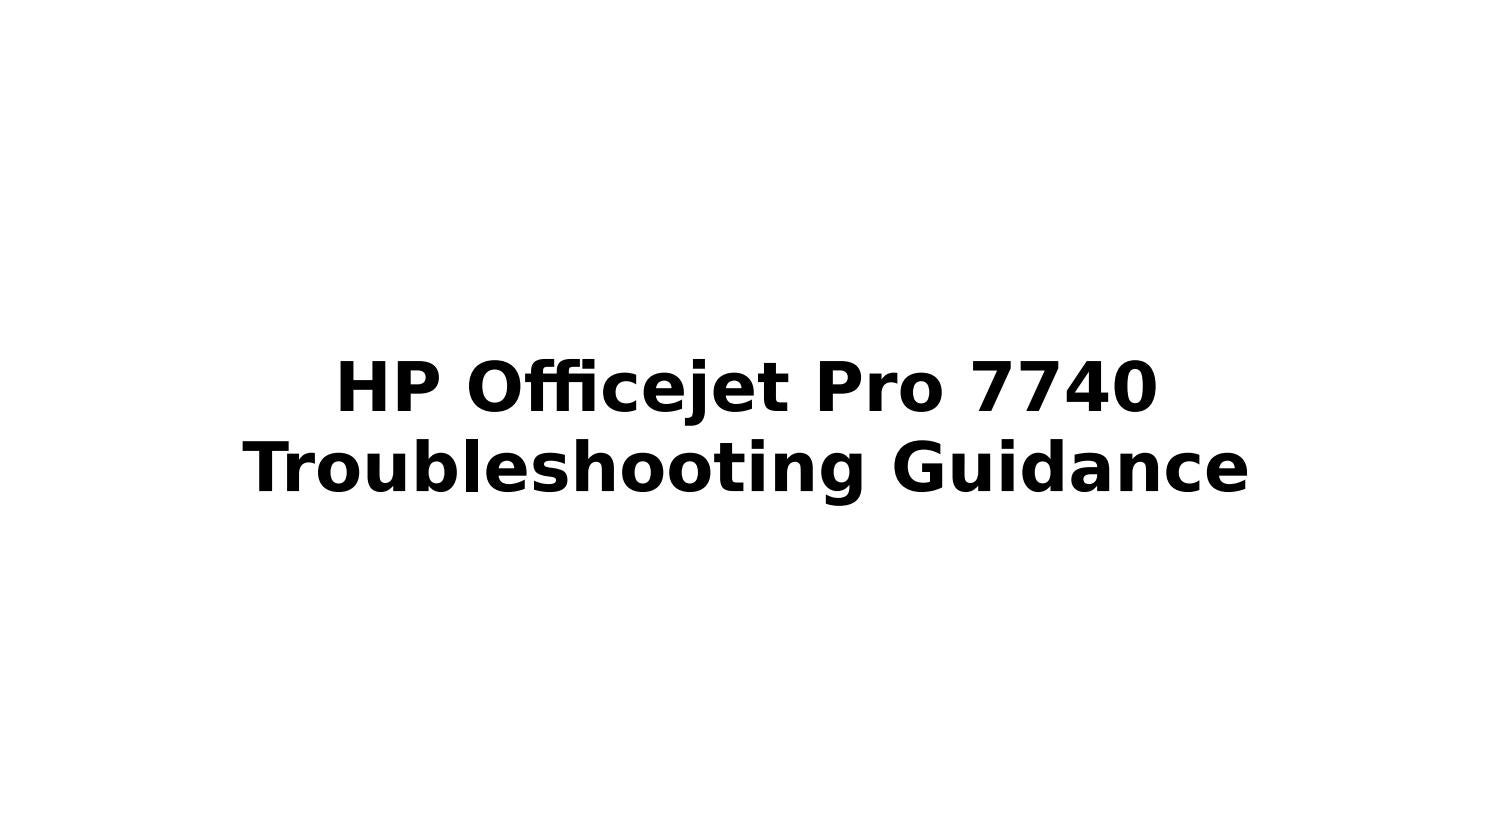 HP Officejet Pro 7740 Troubleshooting Guidance by micheal